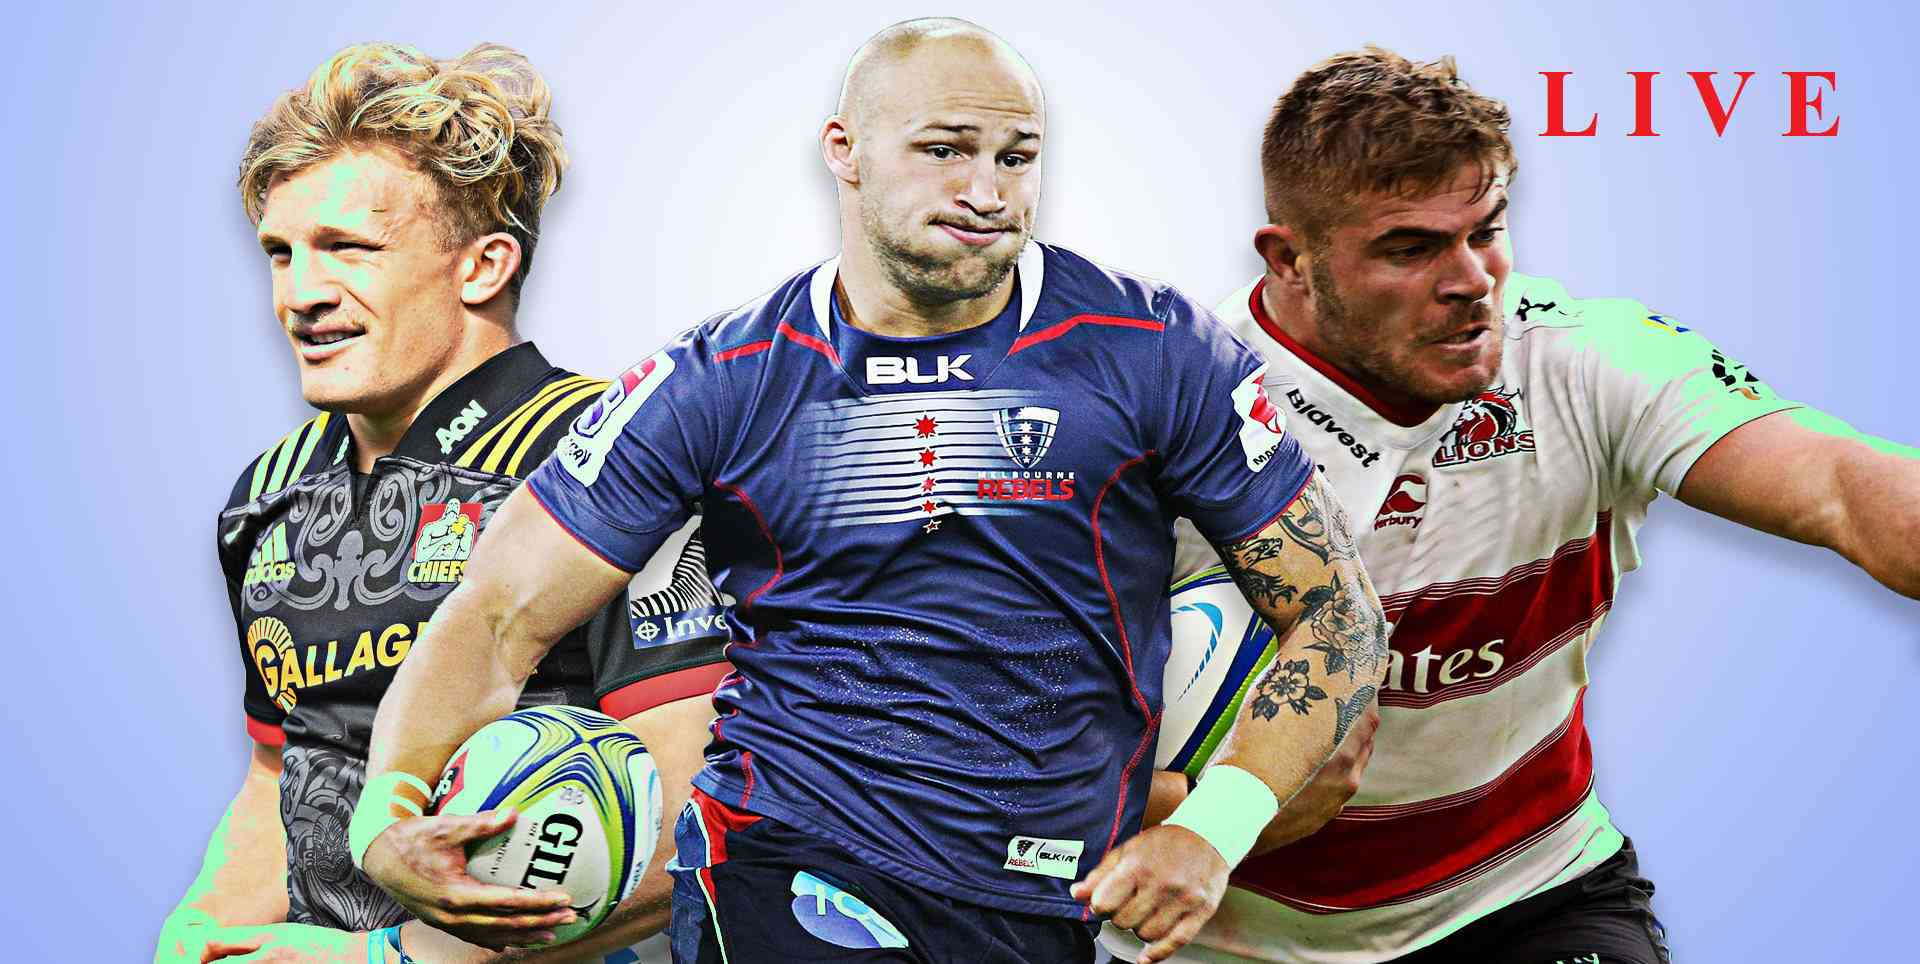 live-ulster-vs-ospreys-rugby-streaming